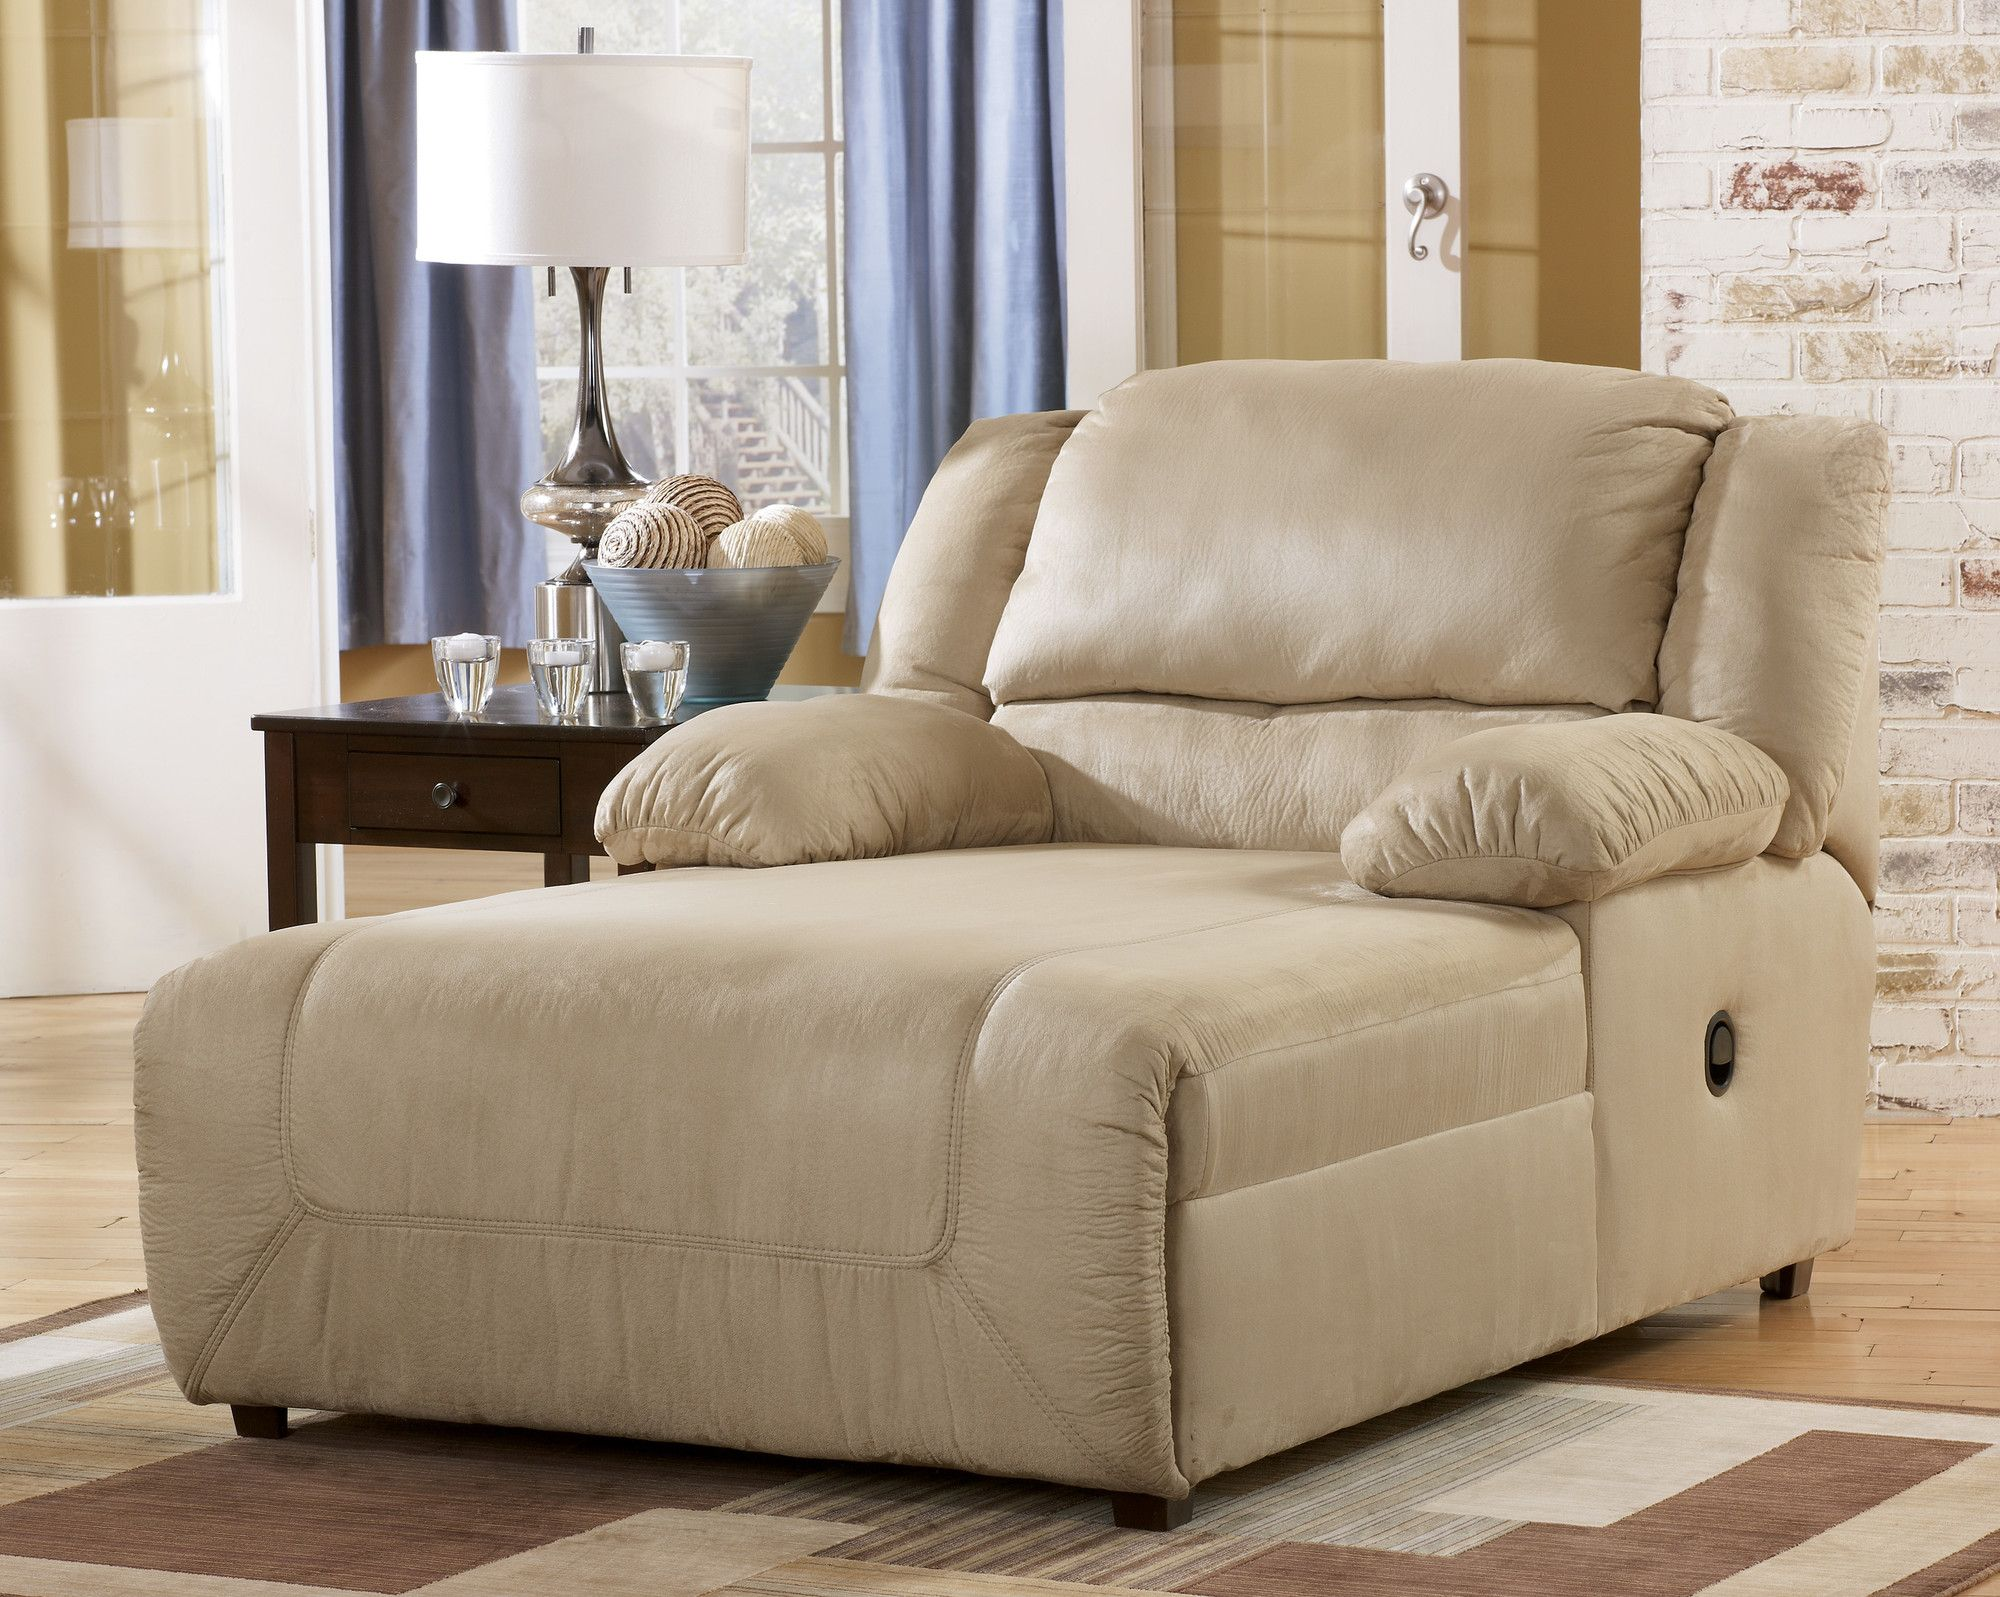 Best Signature Design By Ashley Rudy Chaise Lounge Oversized 400 x 300